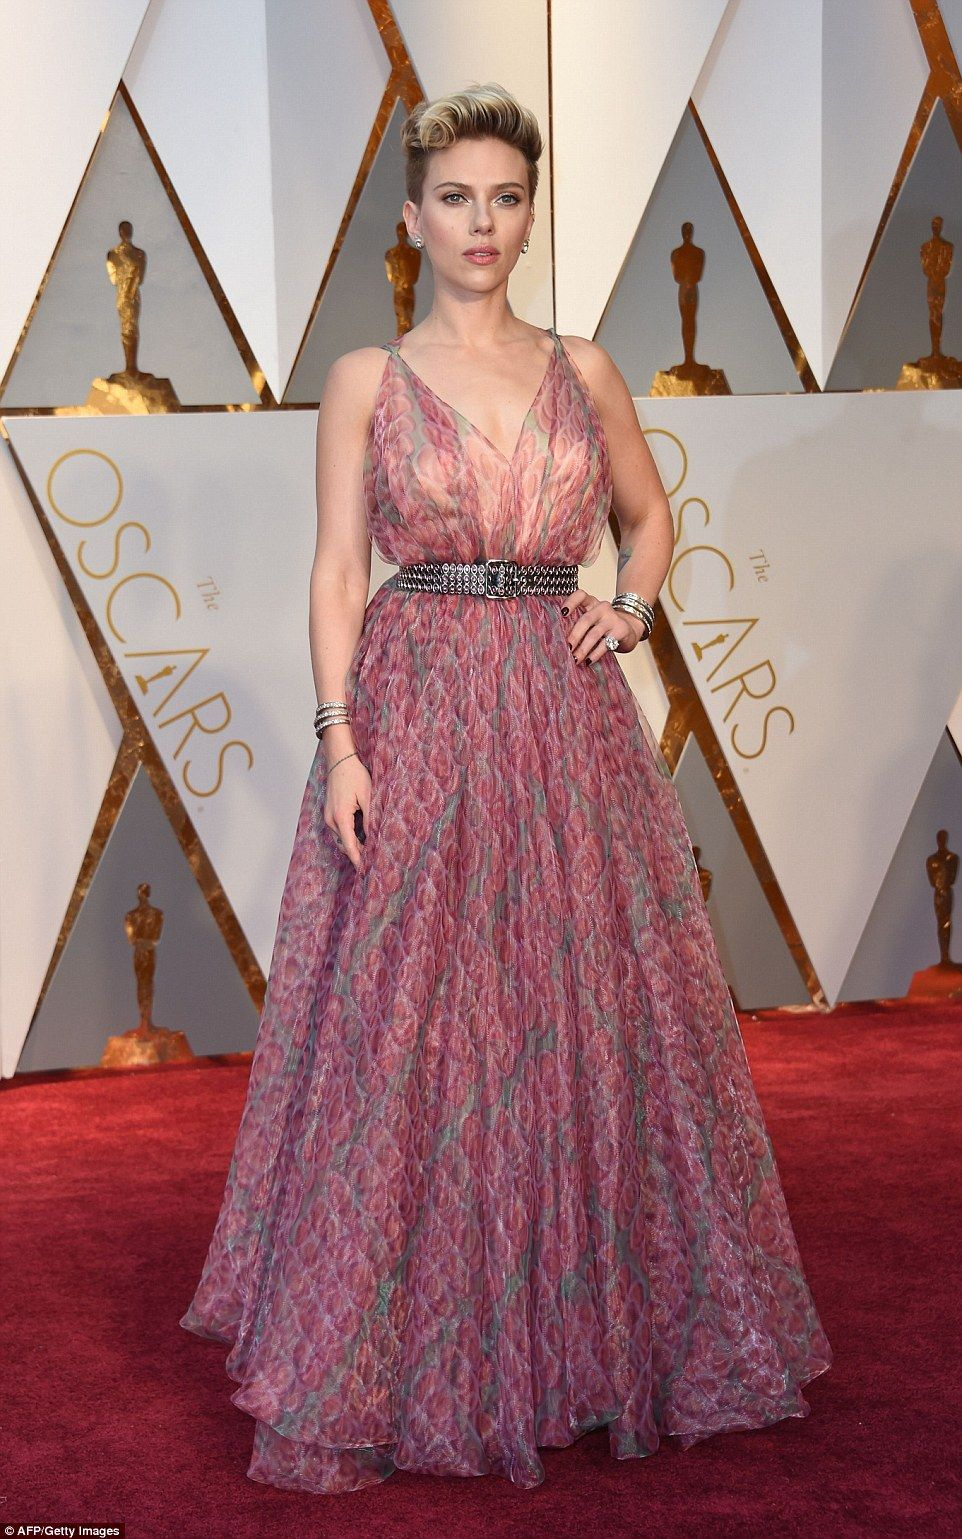 Femail spotlights the style disasters at the th academy awards